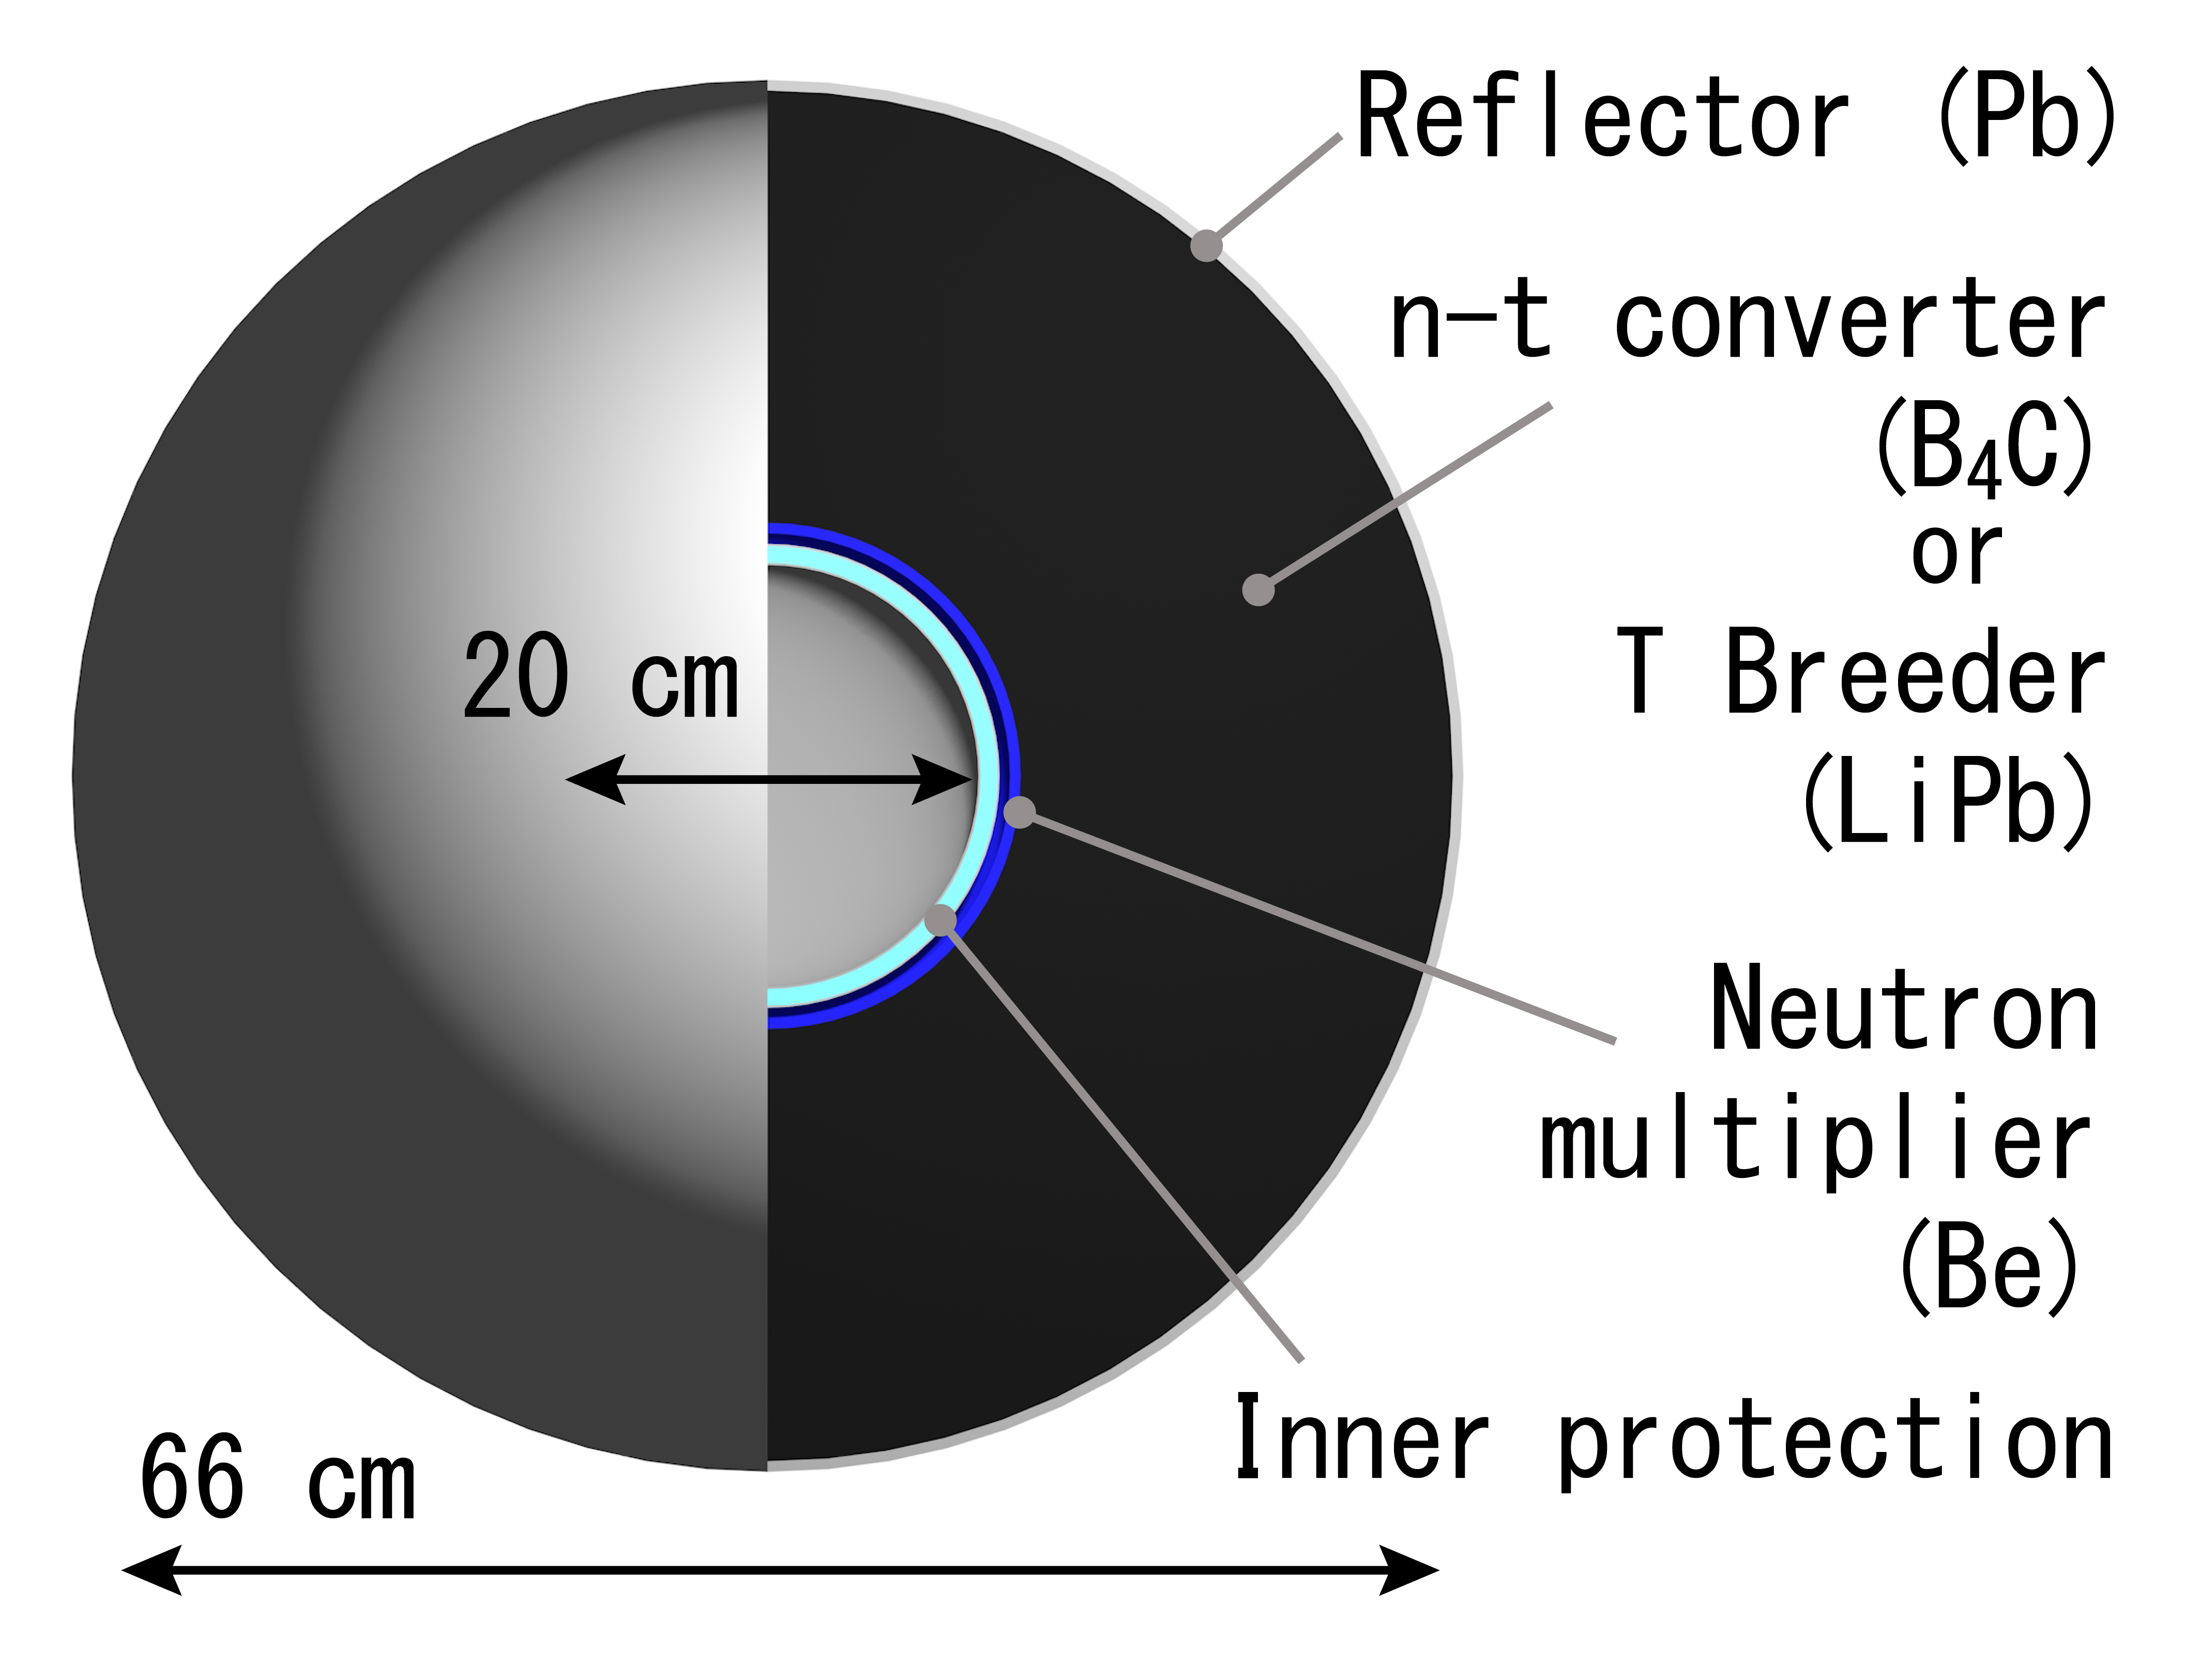 Configuration of a concentric core. Laser beam and LHART delivery ports are not illustrated for simplicity. The inner protection prevents n-t conversion from being affected by the energy of debris and laser beams. The core size is not modified.